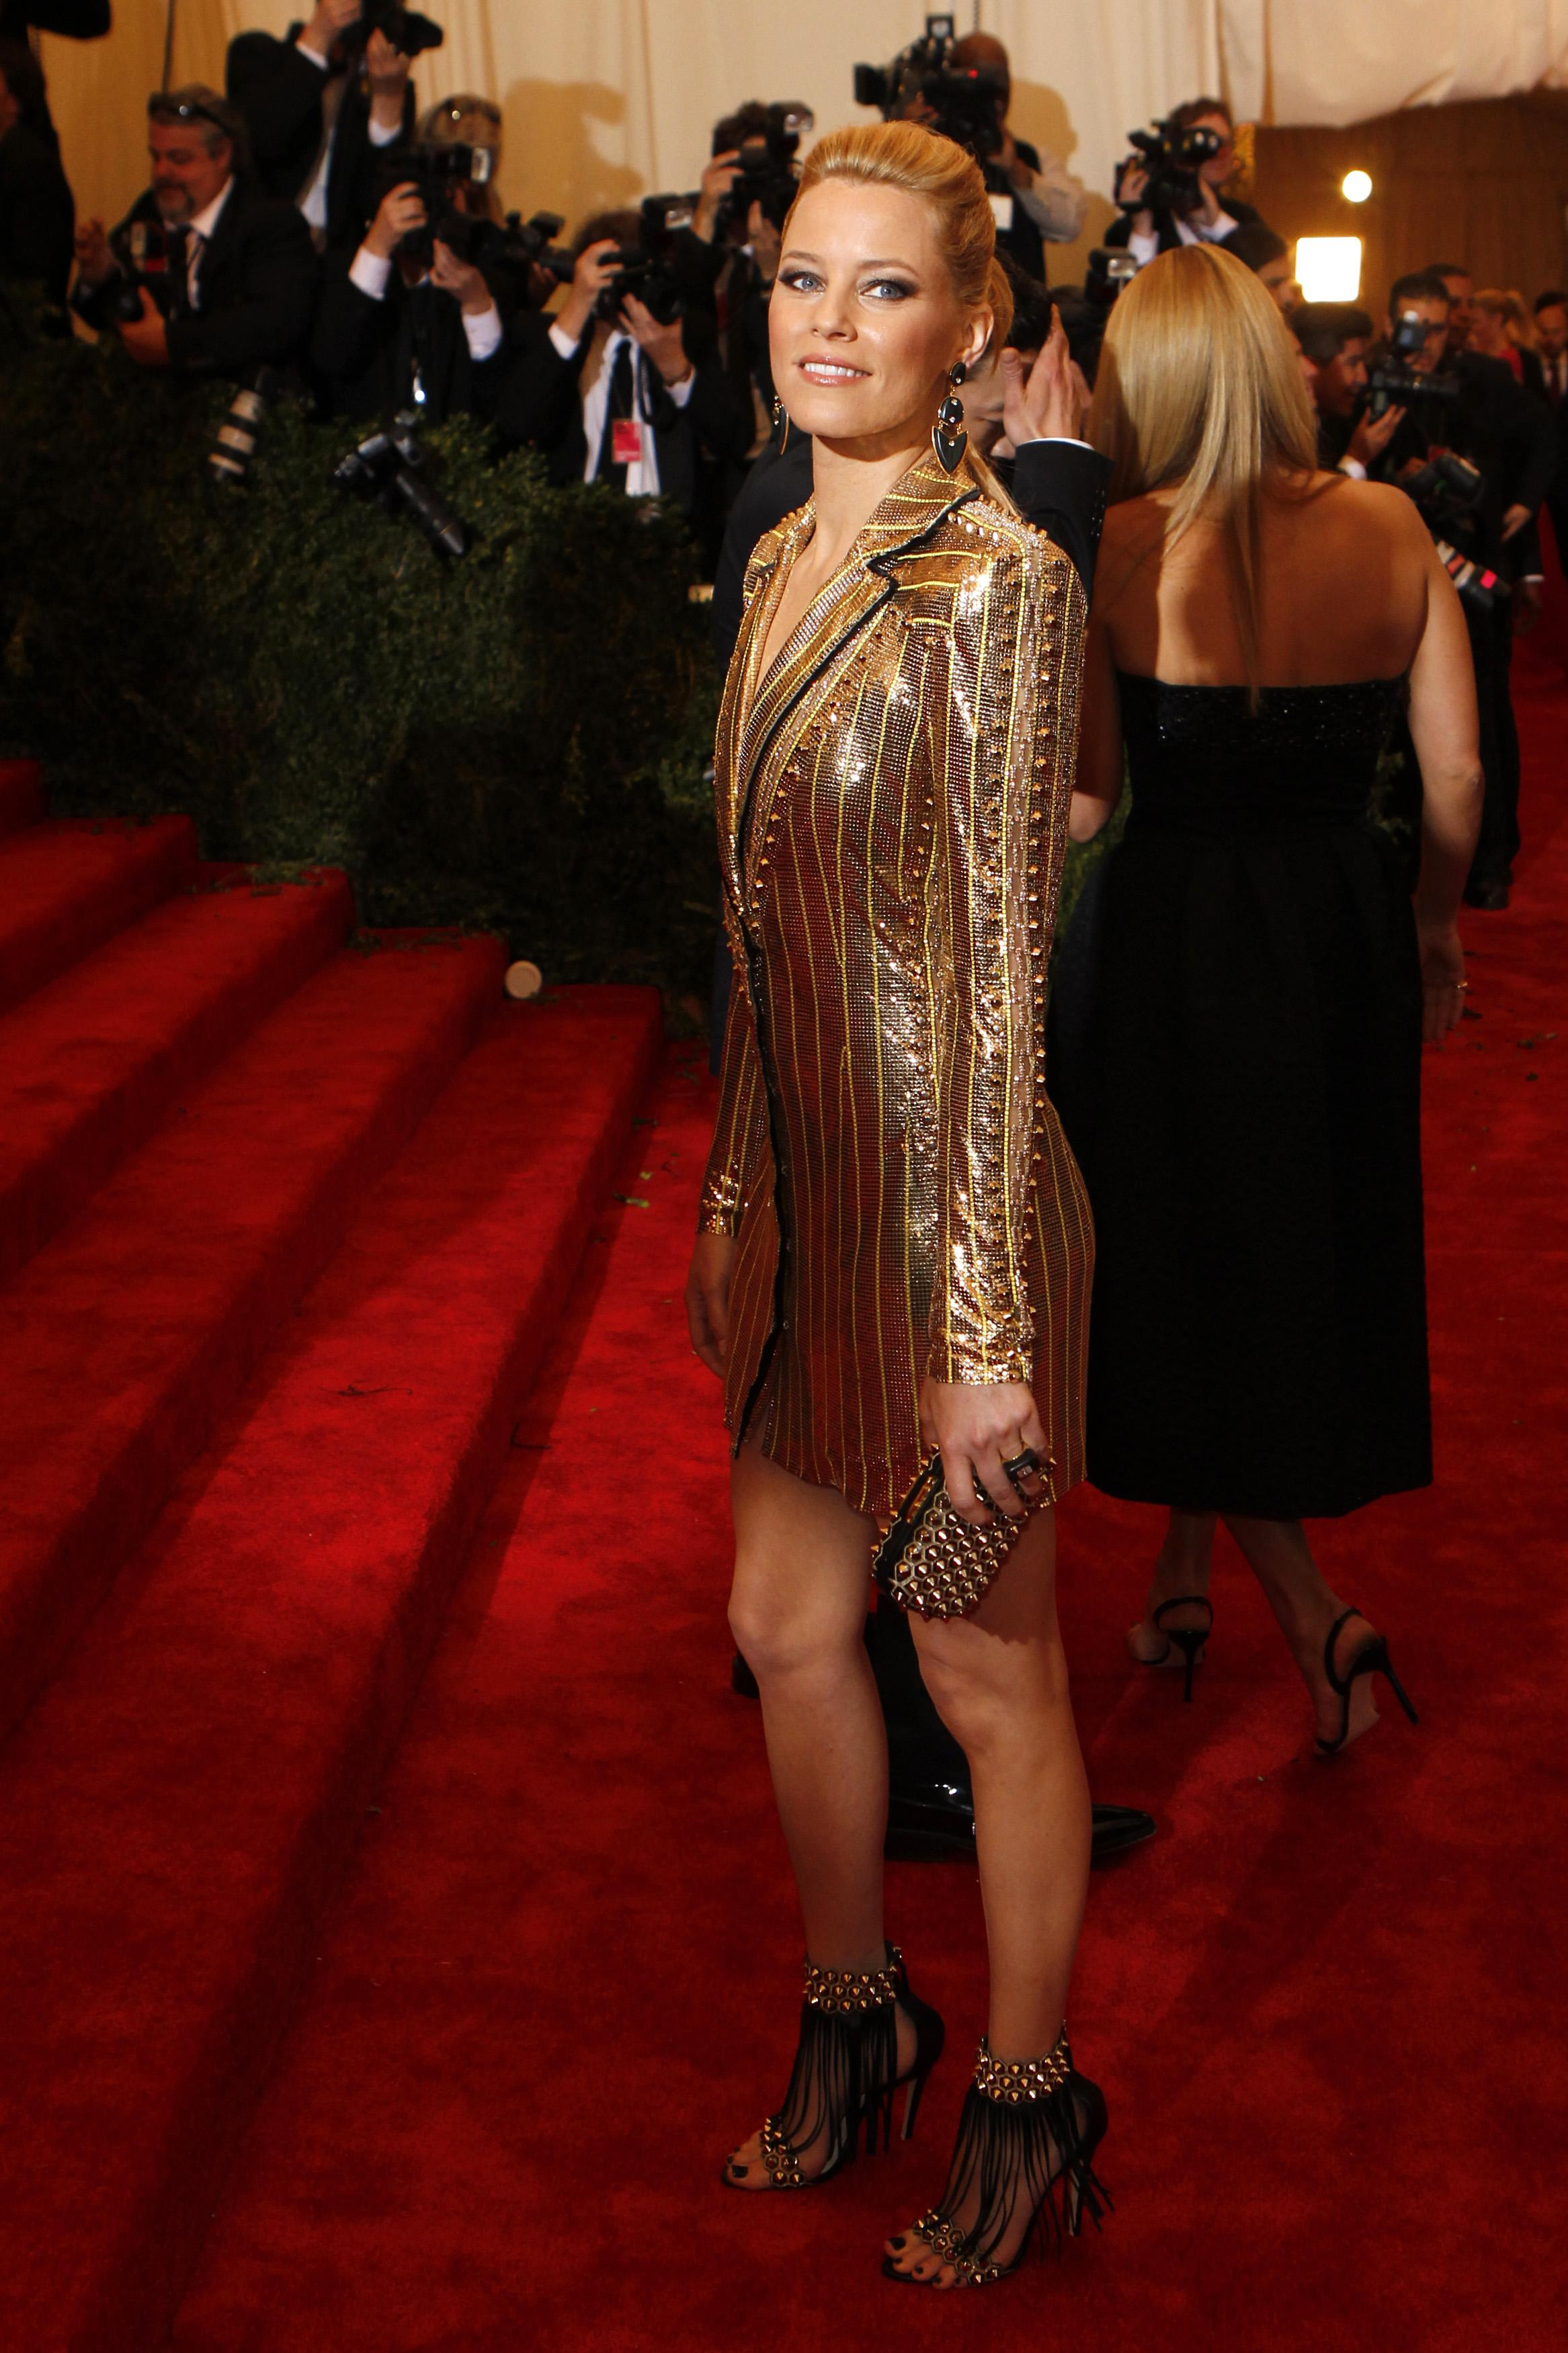 Elizabeth Banks at the 2013 Met Gala